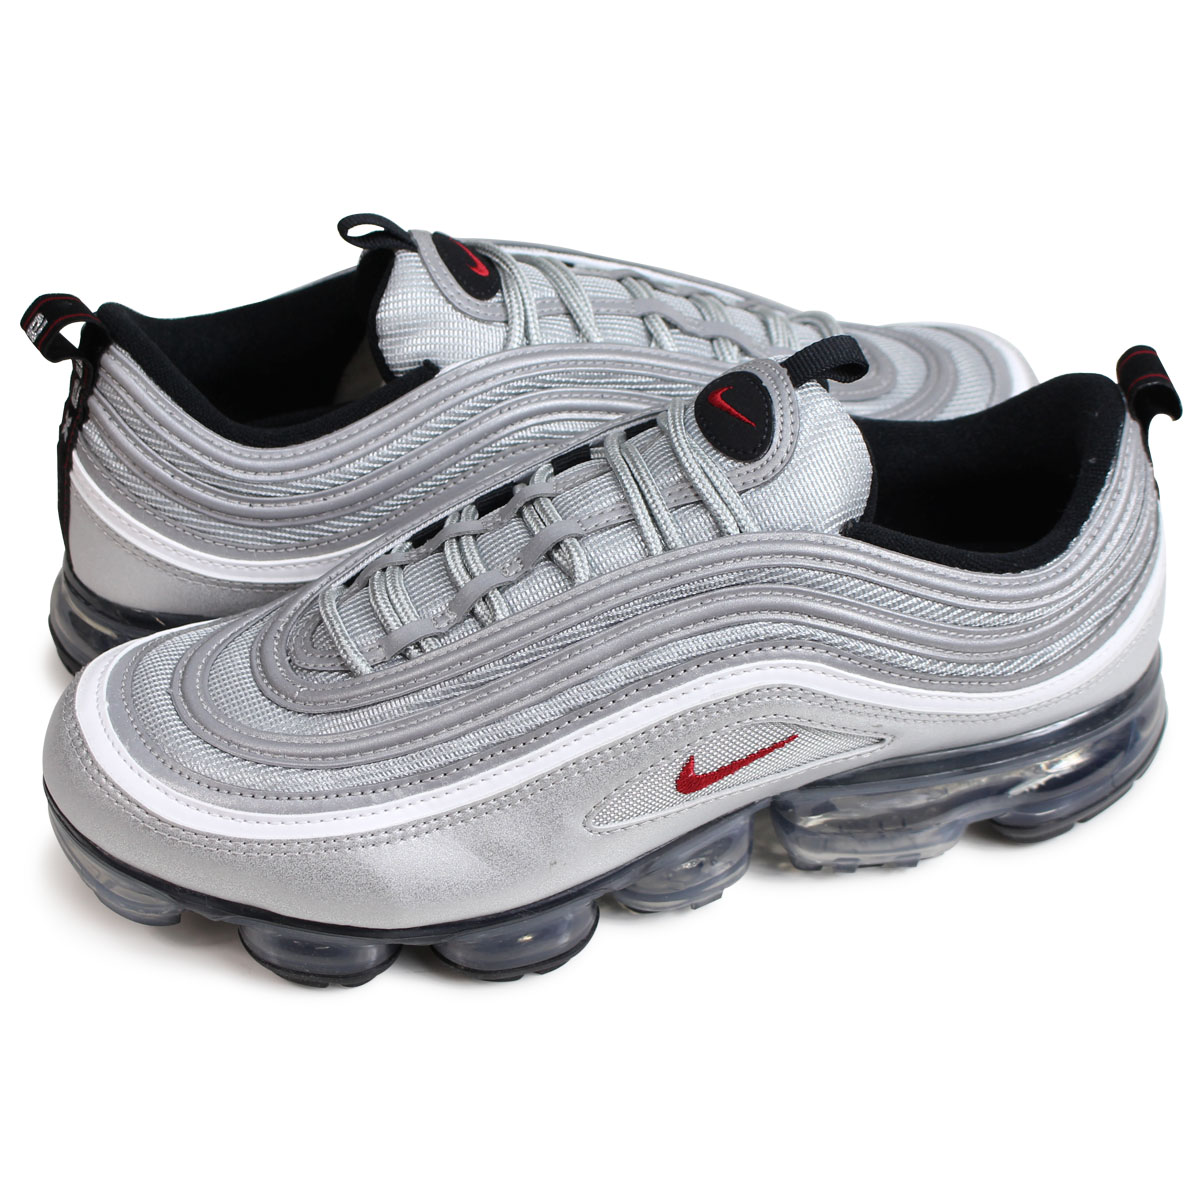 low priced 4dc46 4d210 NIKE AIR VAPORMAX 97 Nike air vapor max 97 sneakers men AJ7291-002 silver  [load planned Shinnyu load in reservation product 5/31 containing]